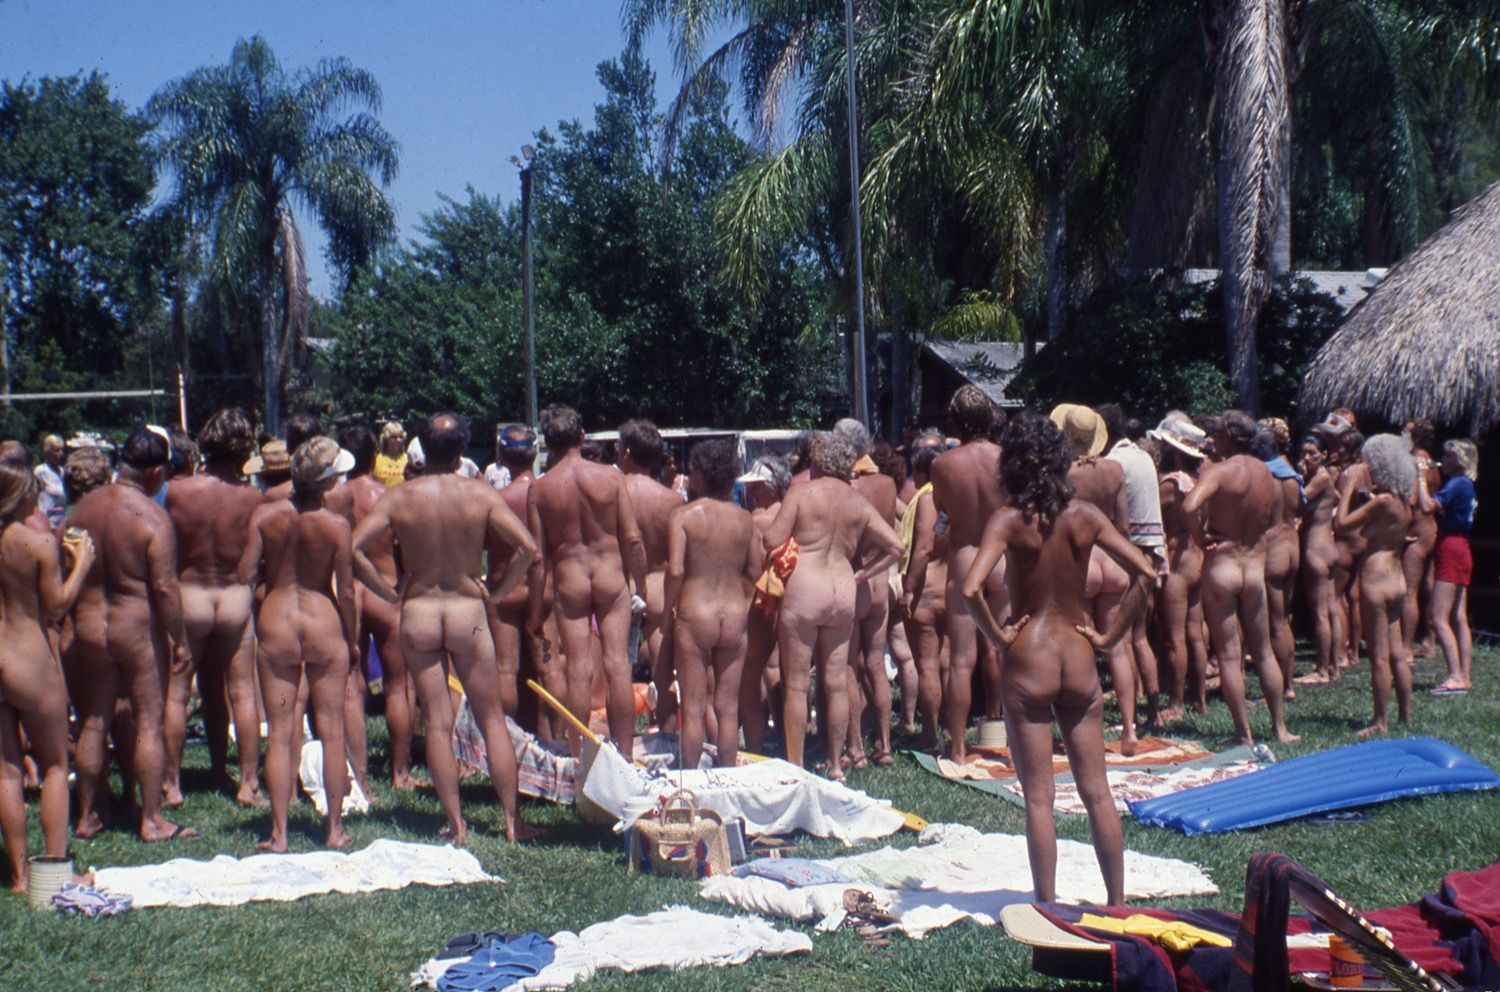 Lake Coma Nudist Camp Lutz Fla Watching A Wet T Shirt Contest Honest